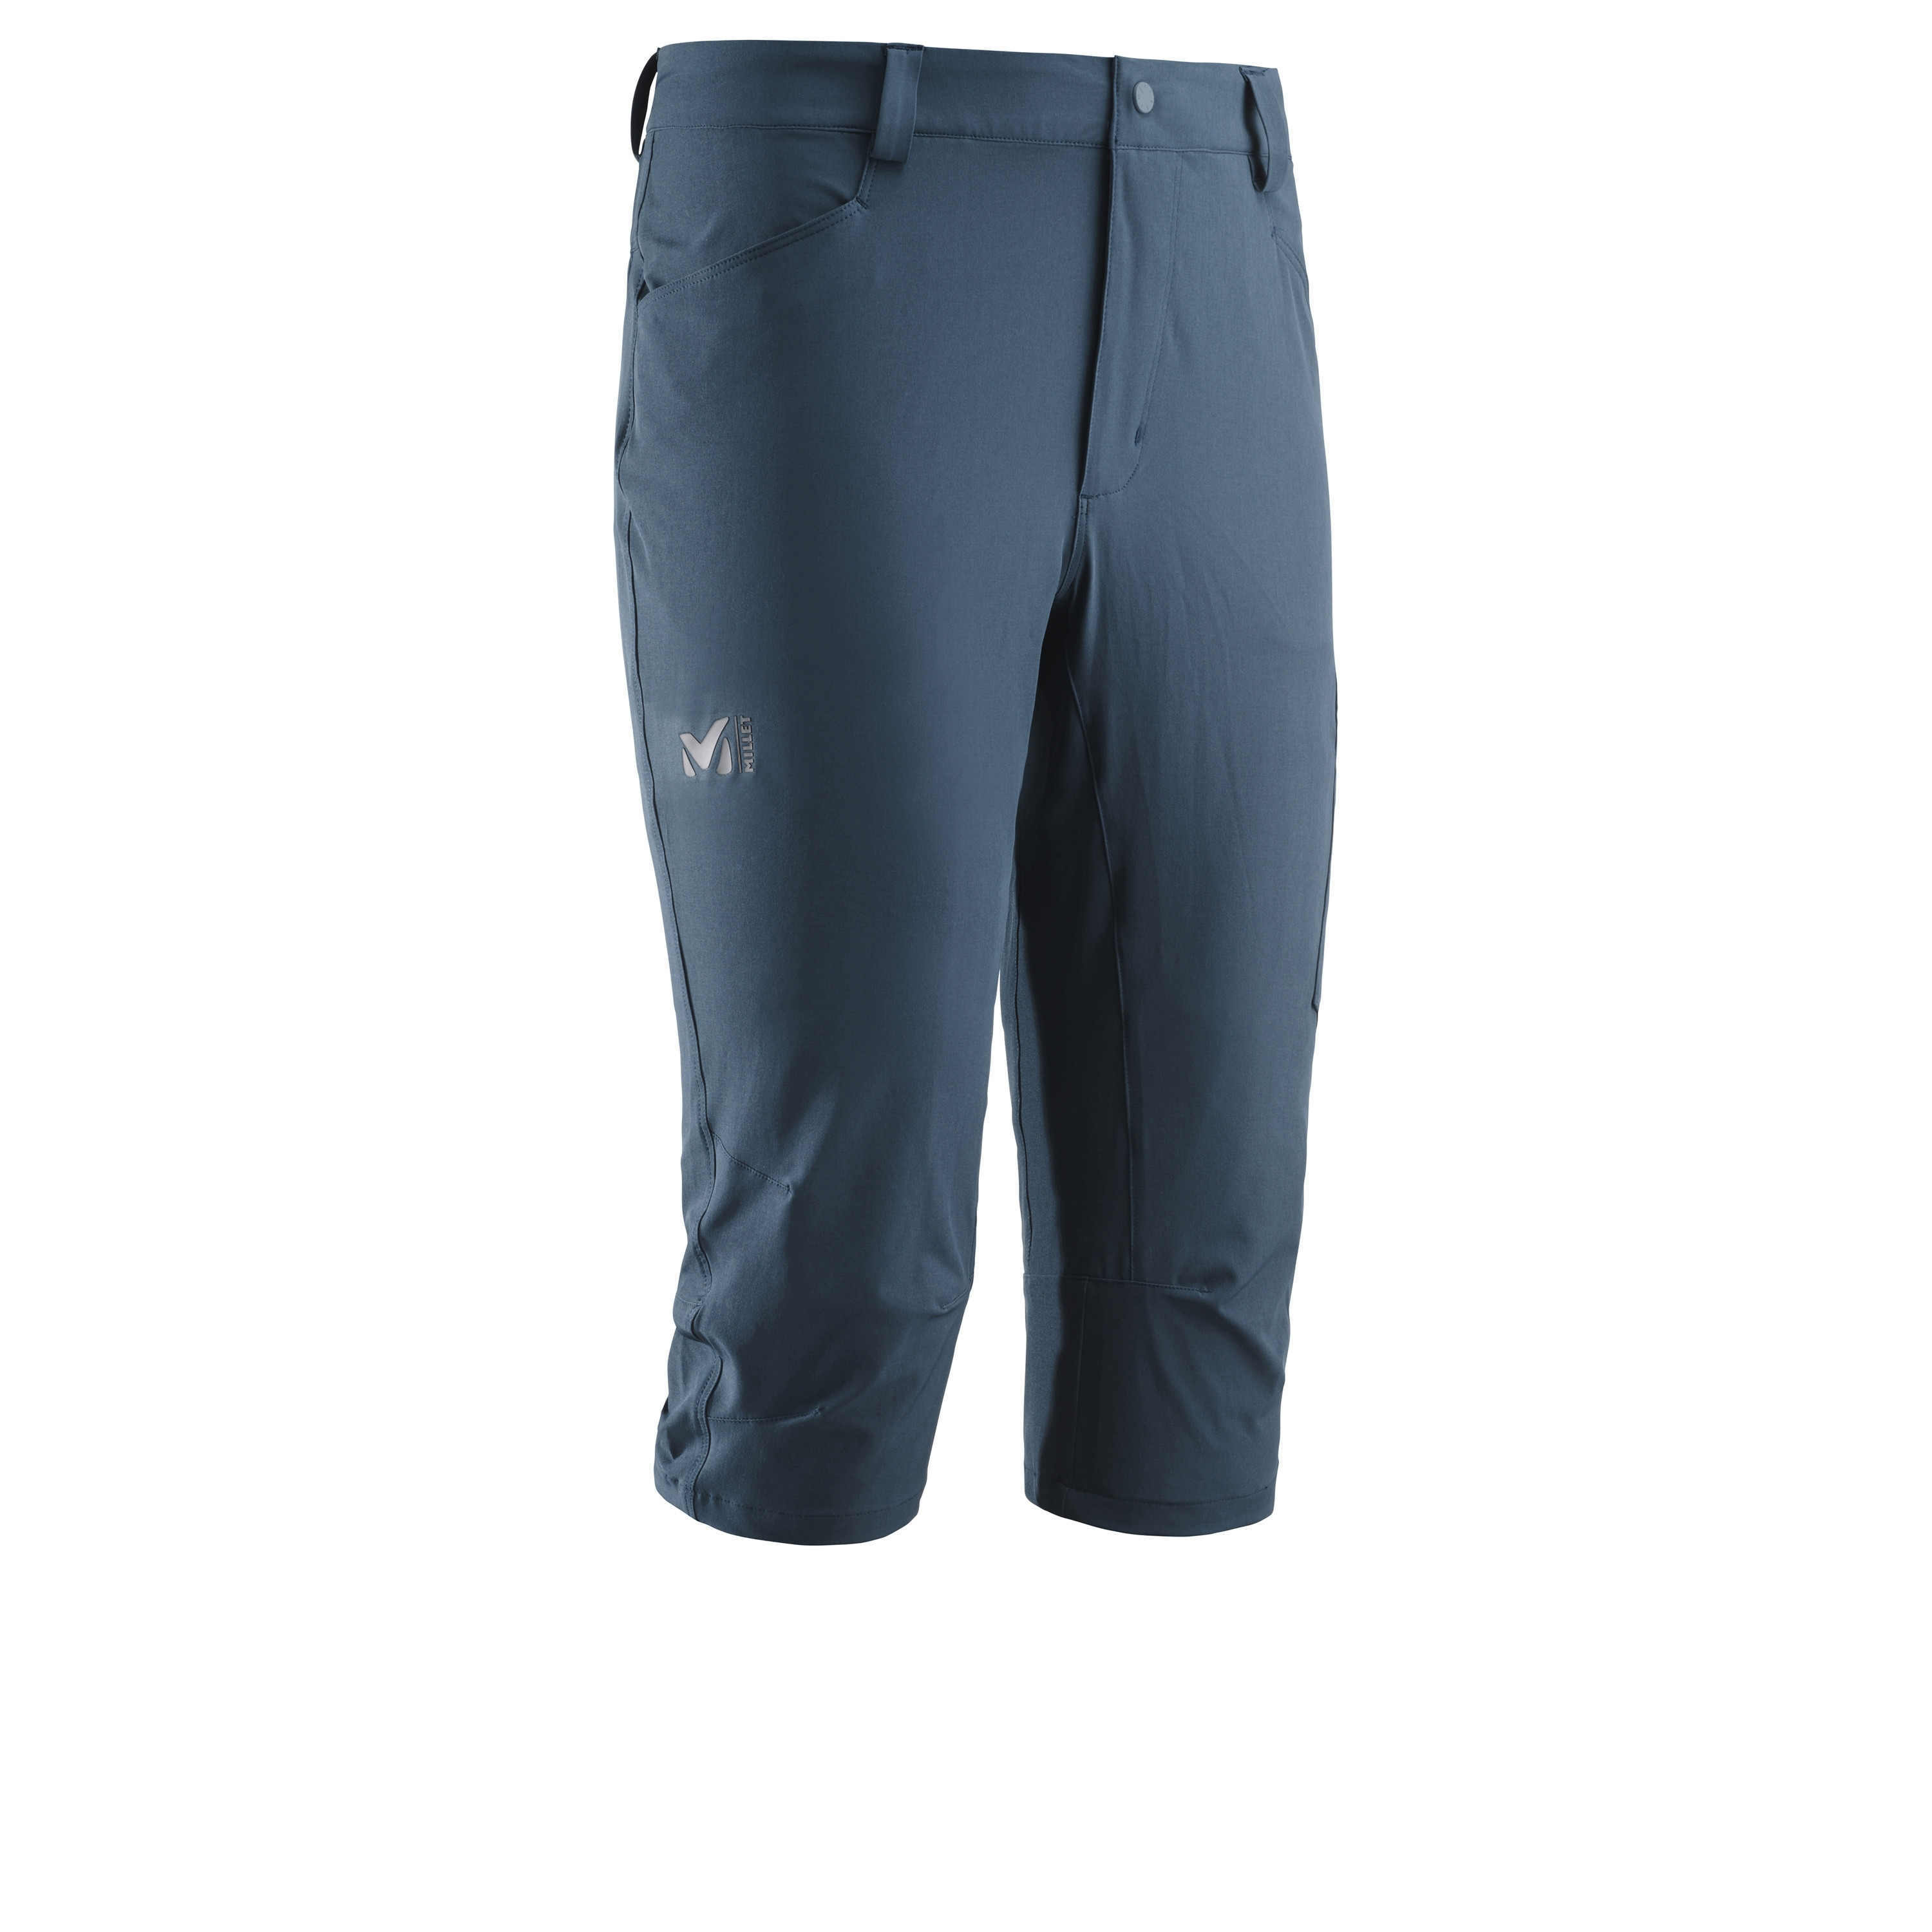 WANAKA STRETCH 3/4 PANT